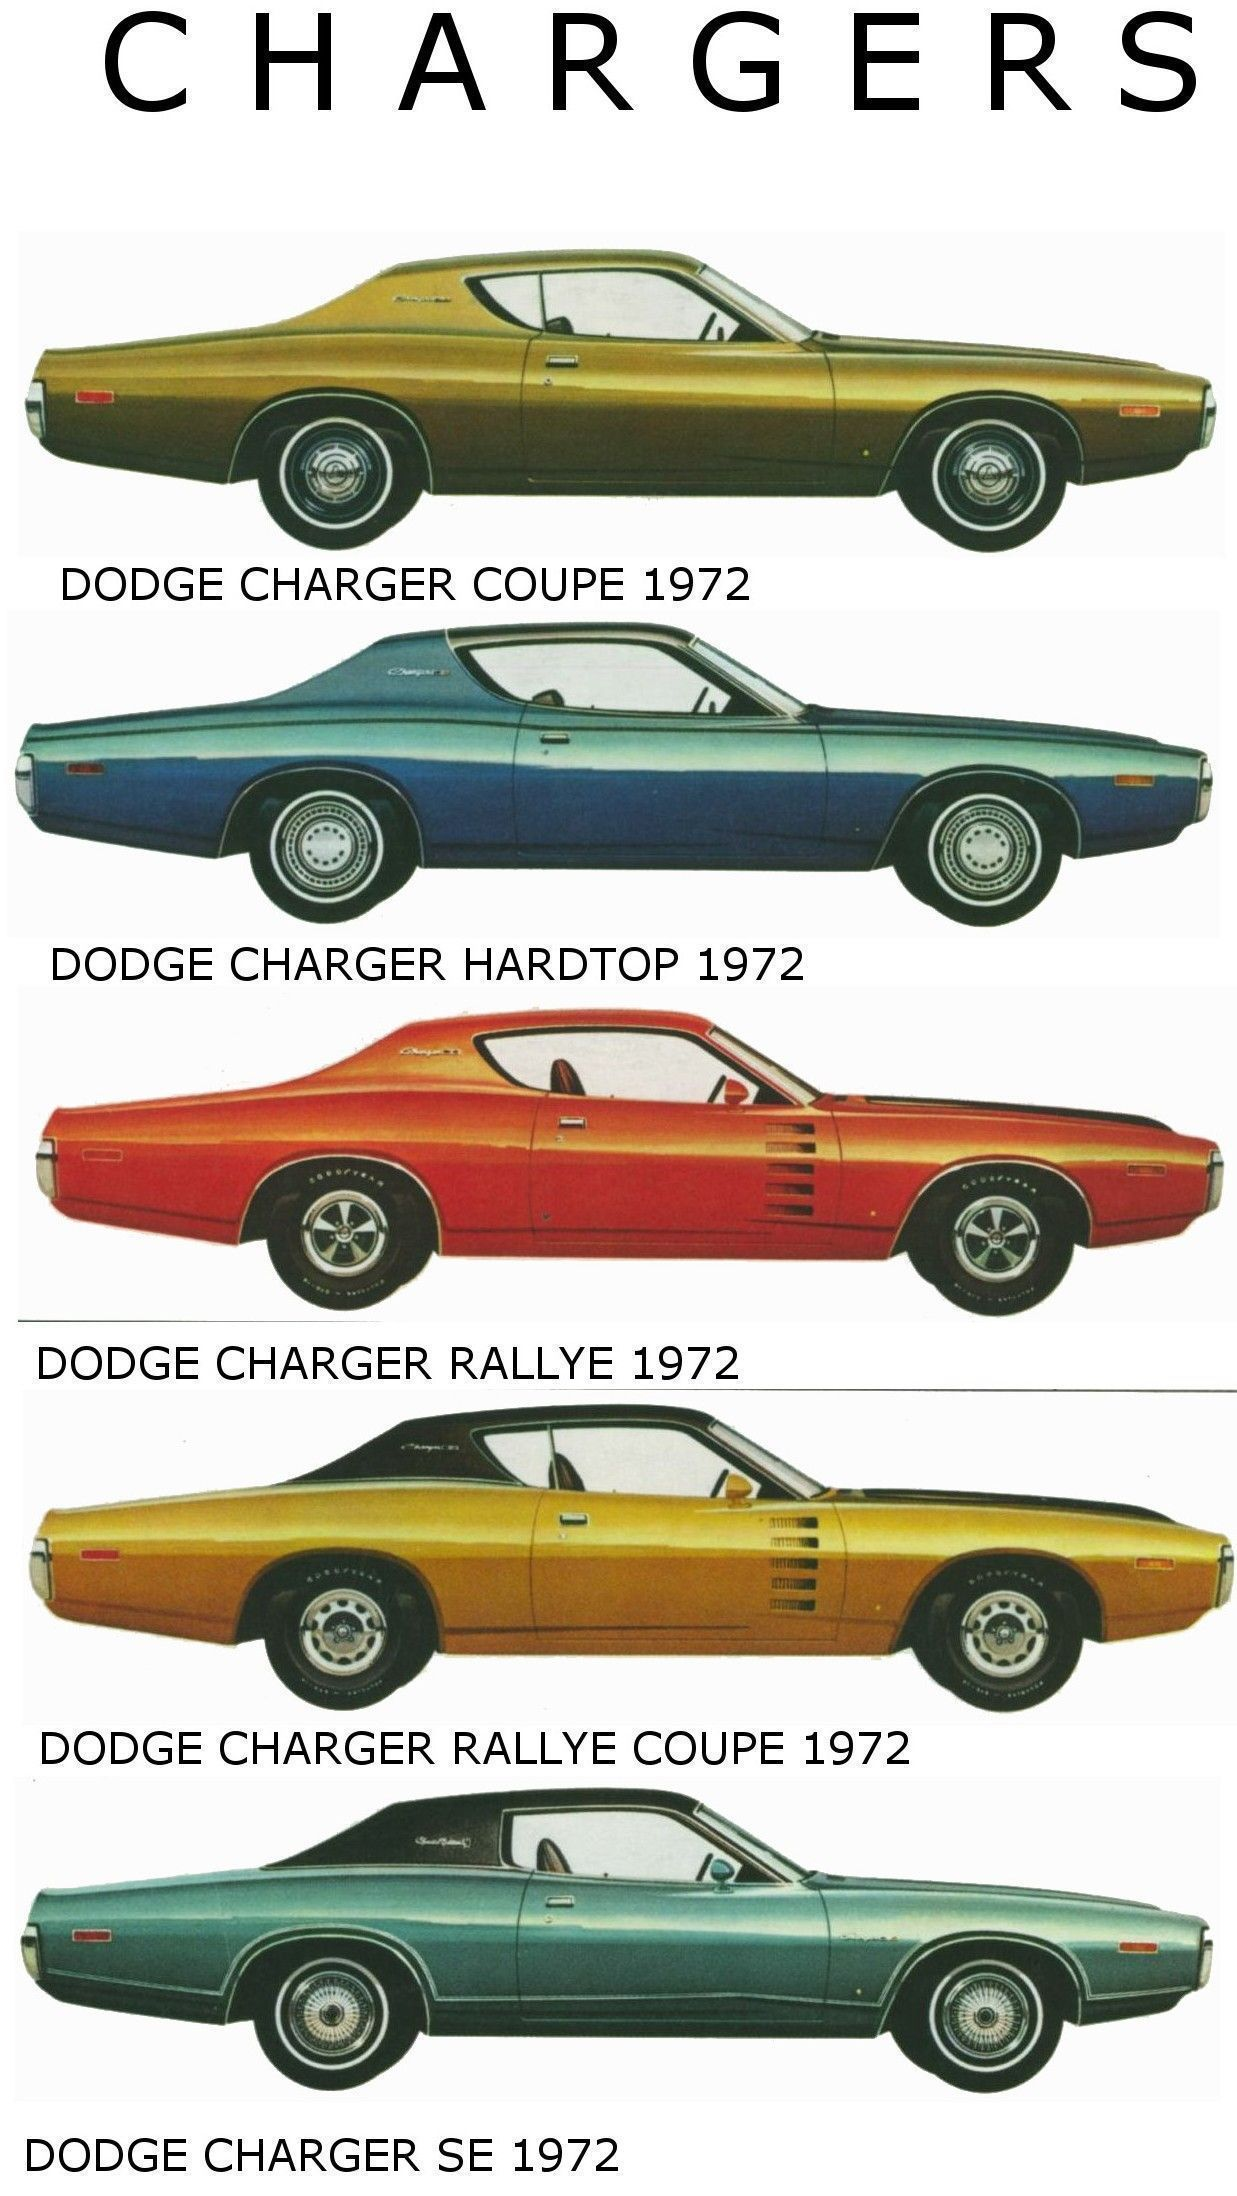 Dodge Charger S 1972 Model Lineup Dodgechargervintagecars Dodgevintagecars Vintagemusclecars Classic Cars Dodge Charger Dodge Muscle Cars